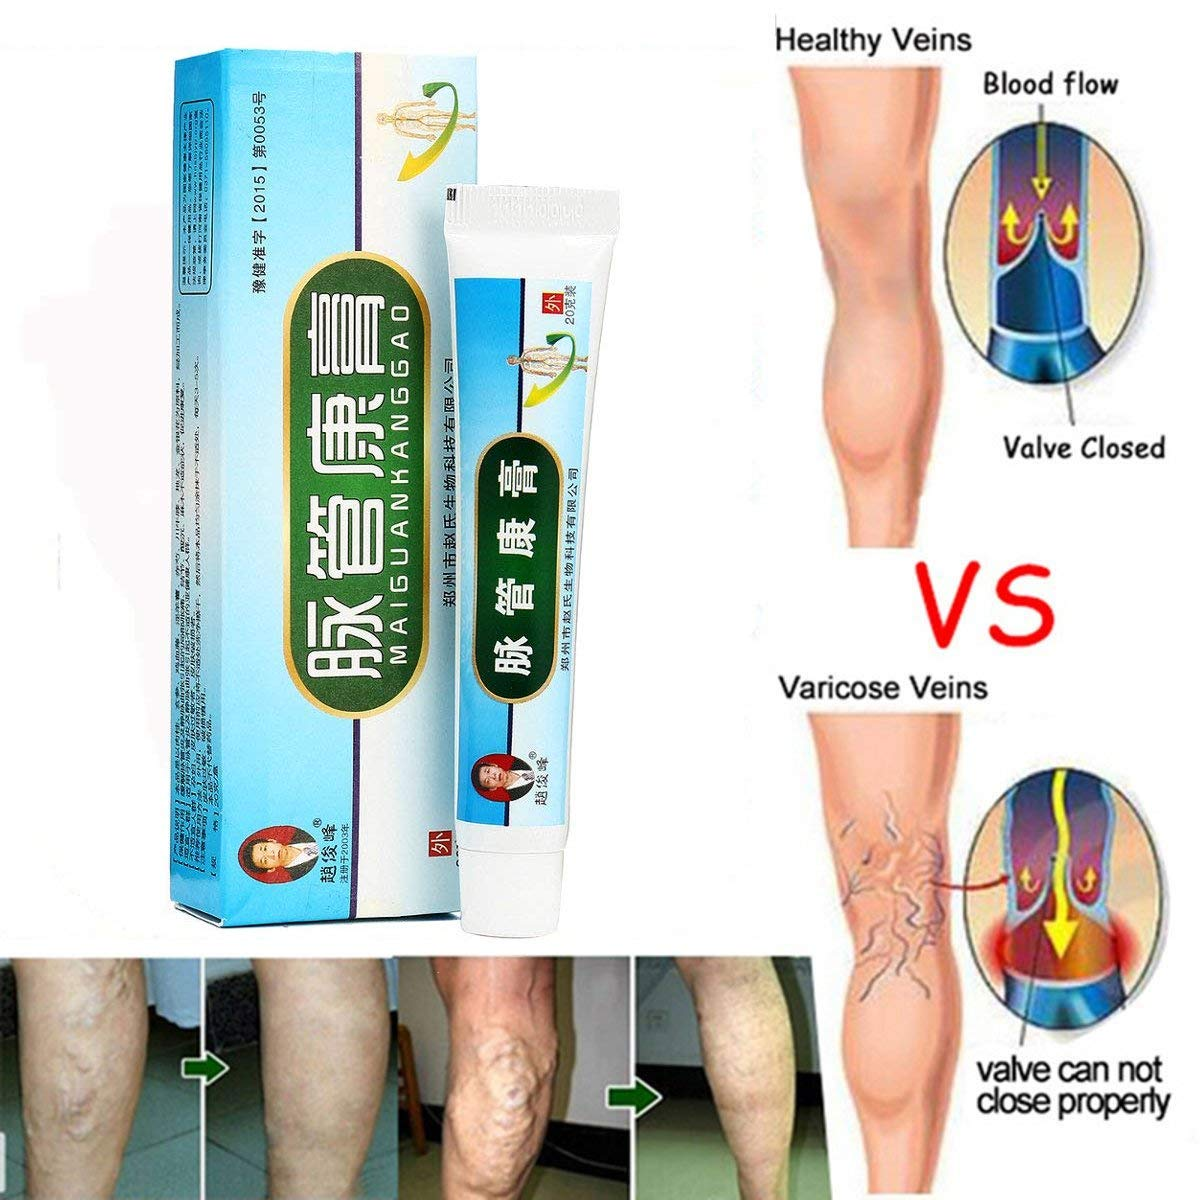 How to treat inflammation and varicose veins